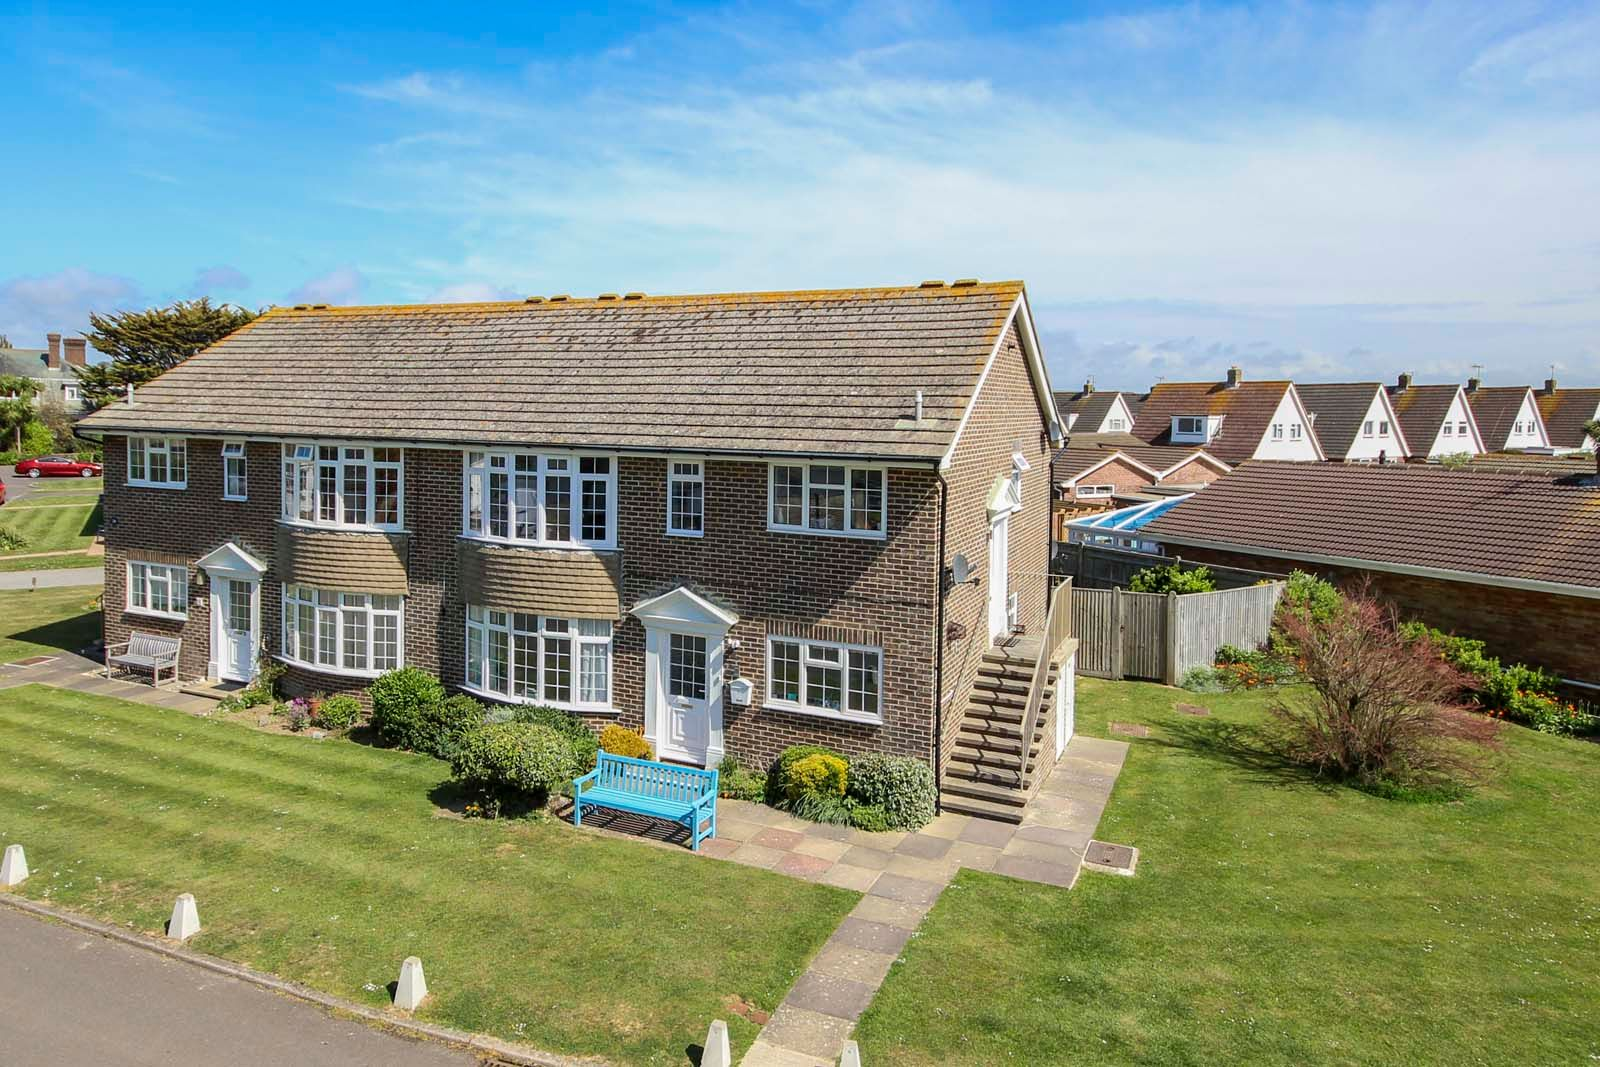 2 bed  for sale in Ferring Marine - Property Image 1